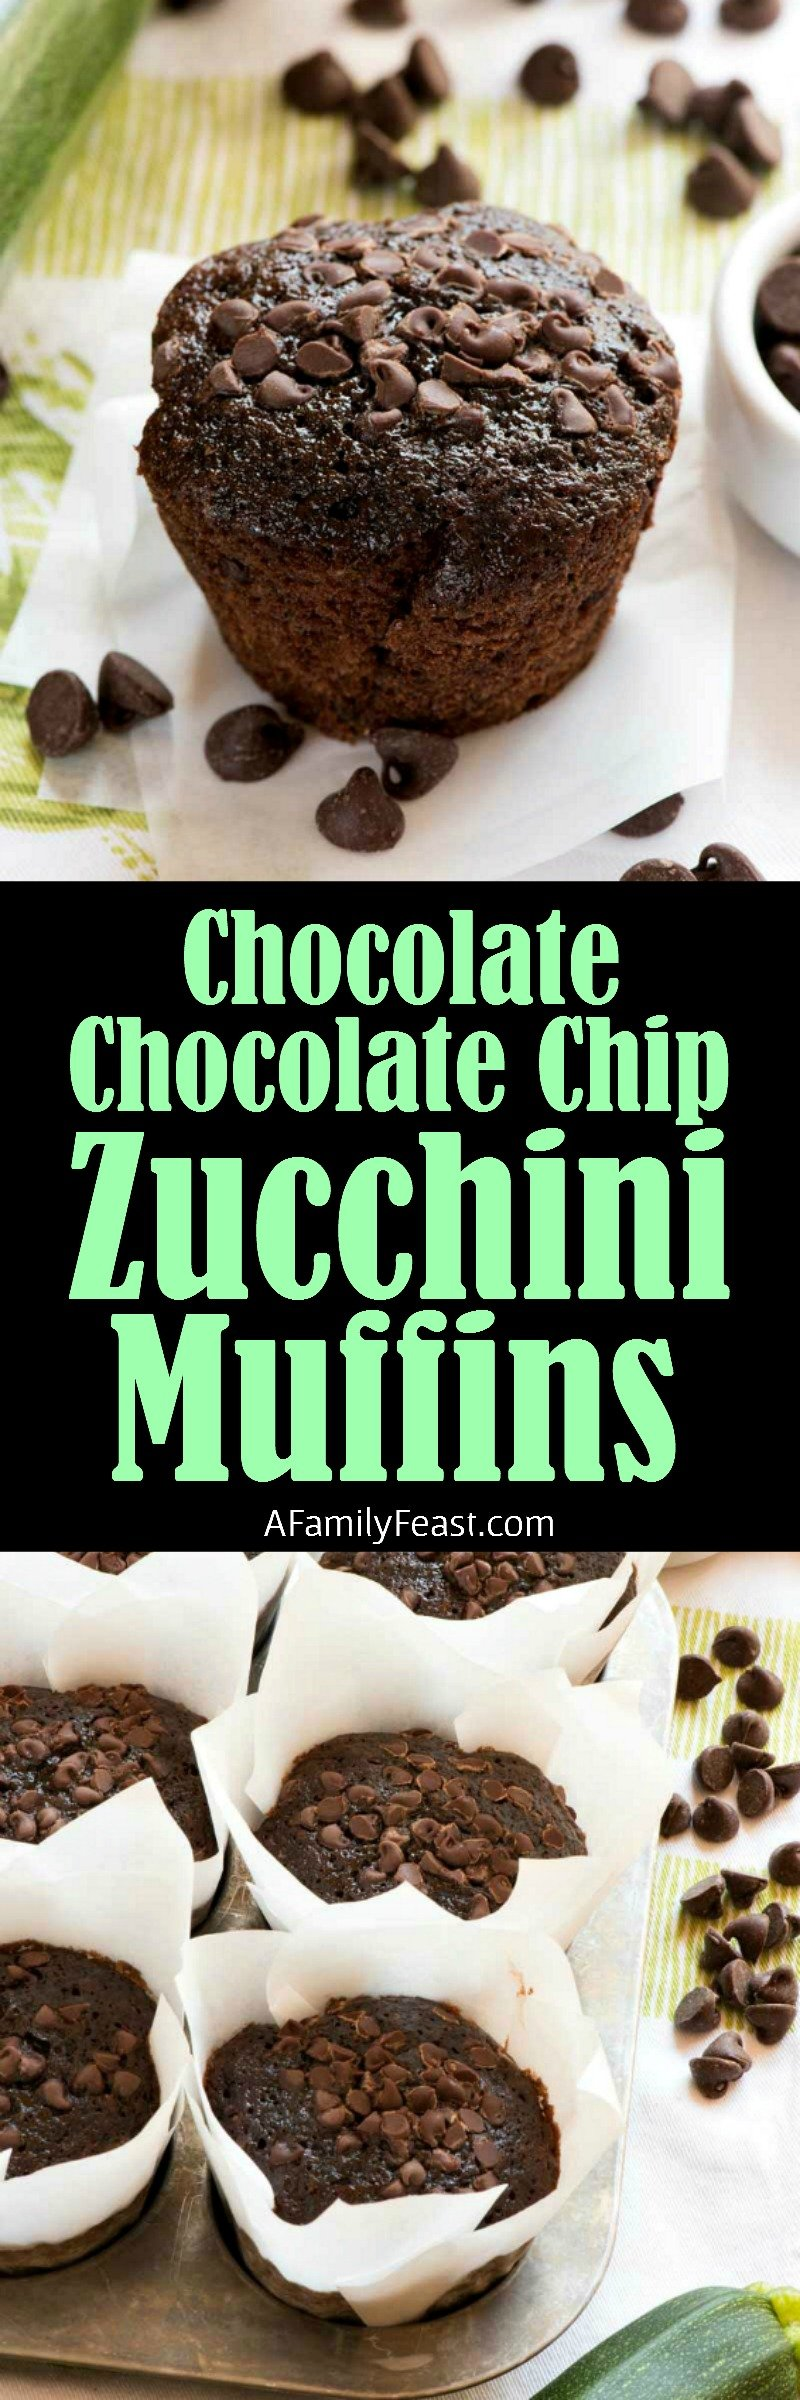 These moist and chocolatey Chocolate Chocolate Chip Zucchini Muffins are a delicious way to bake with fresh garden zucchini!